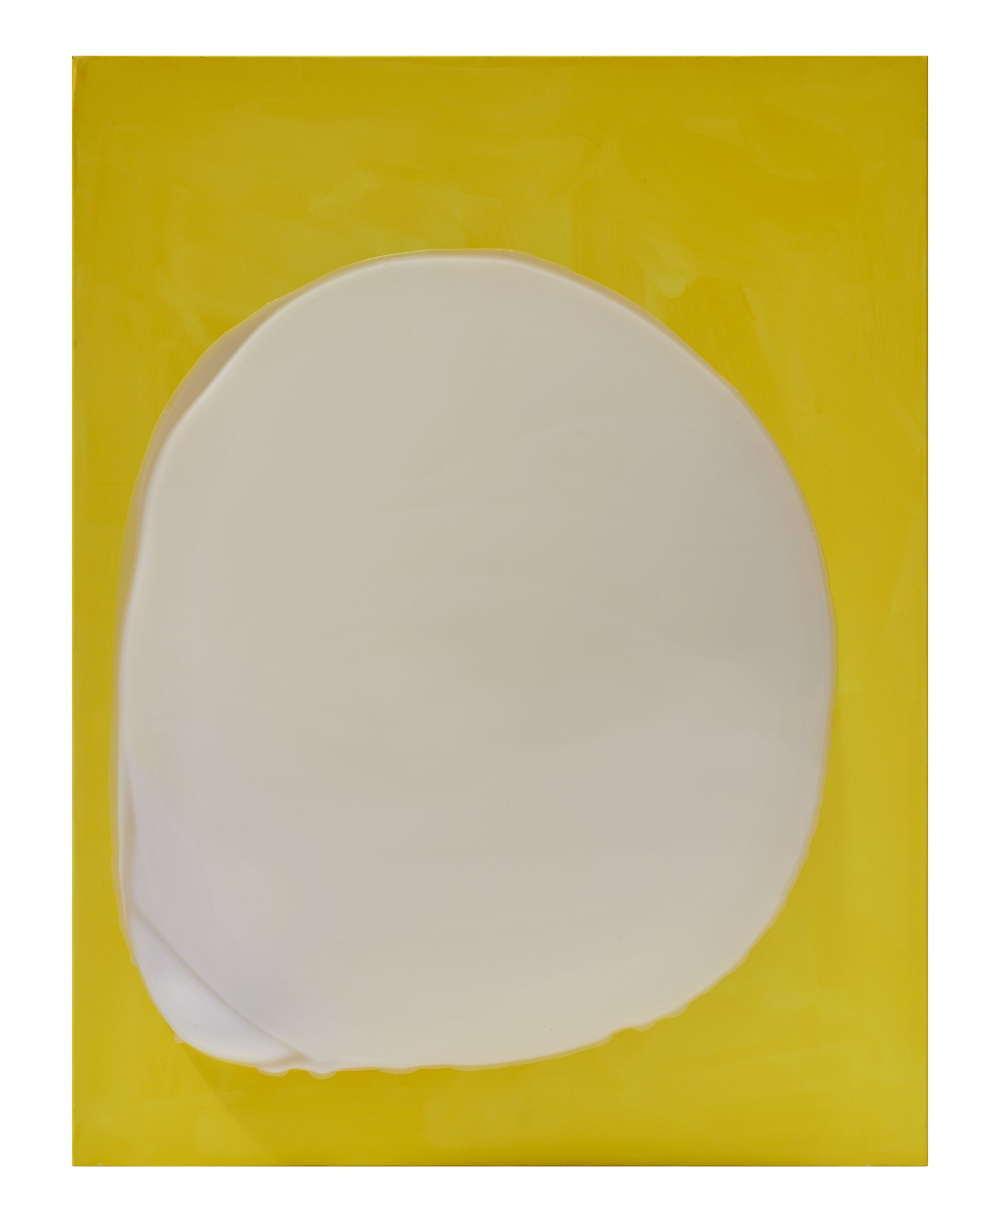 Takesada Matsutani, Object-Yellow, 2018. Vinyl adhesive, acrylic on canvas 116 x 89 x 15 cm / 45 5/8 x 35 x 5 7/8 in © Takesada Matsutani. Courtesy of the artist and Hauser & Wirth